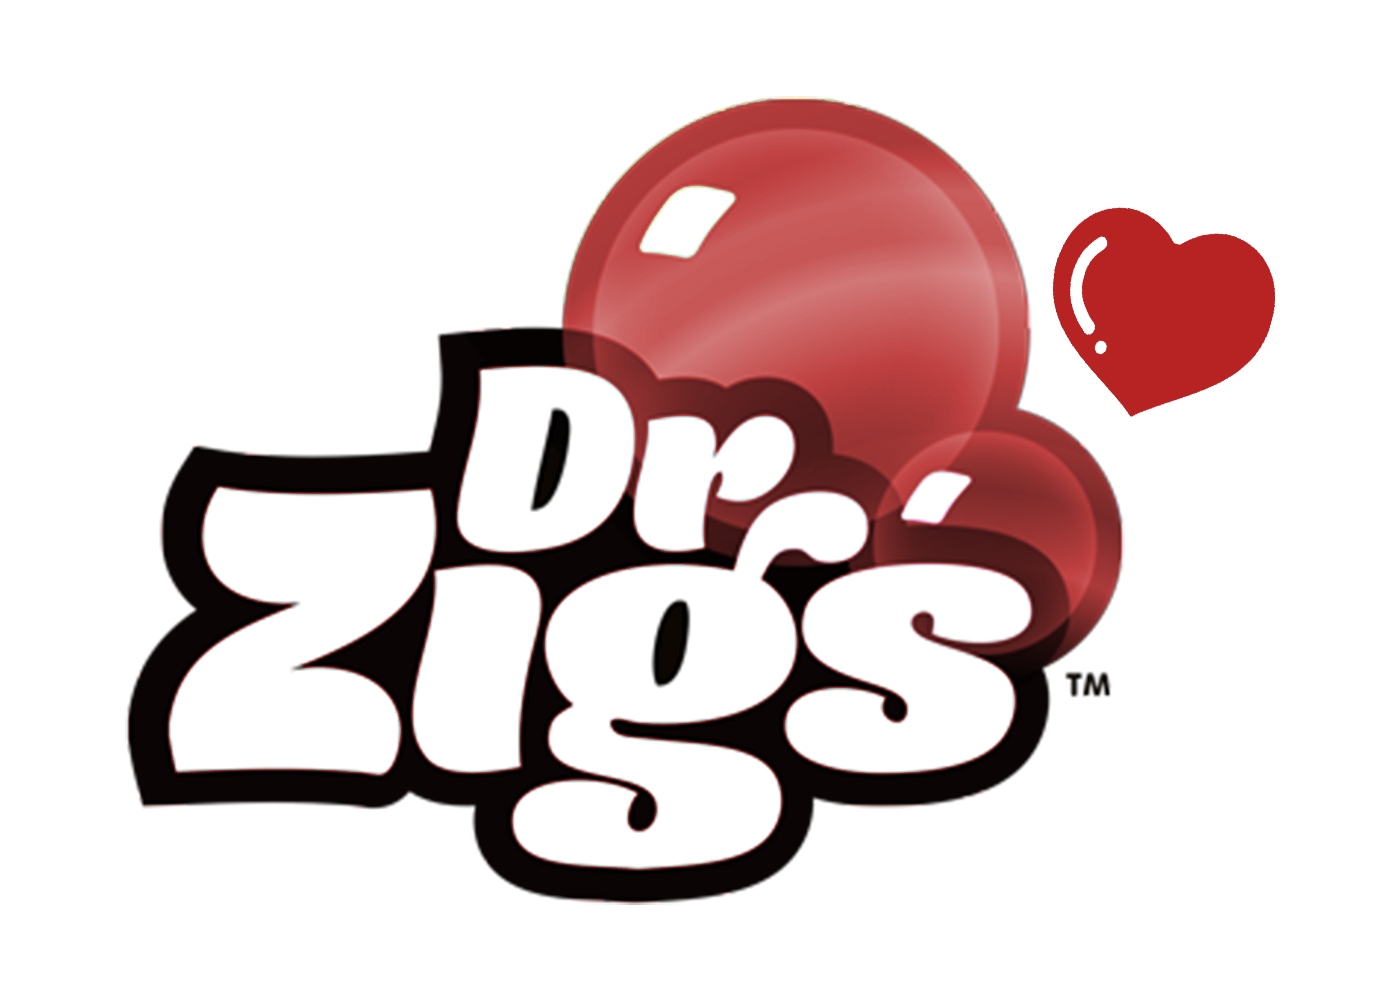 dr zigs extraordinary bubbles giant soap bubble eco ethical shopping 0 waste no plastic toys eco friendly sustainable biodegradable vegan children kids ideas half term